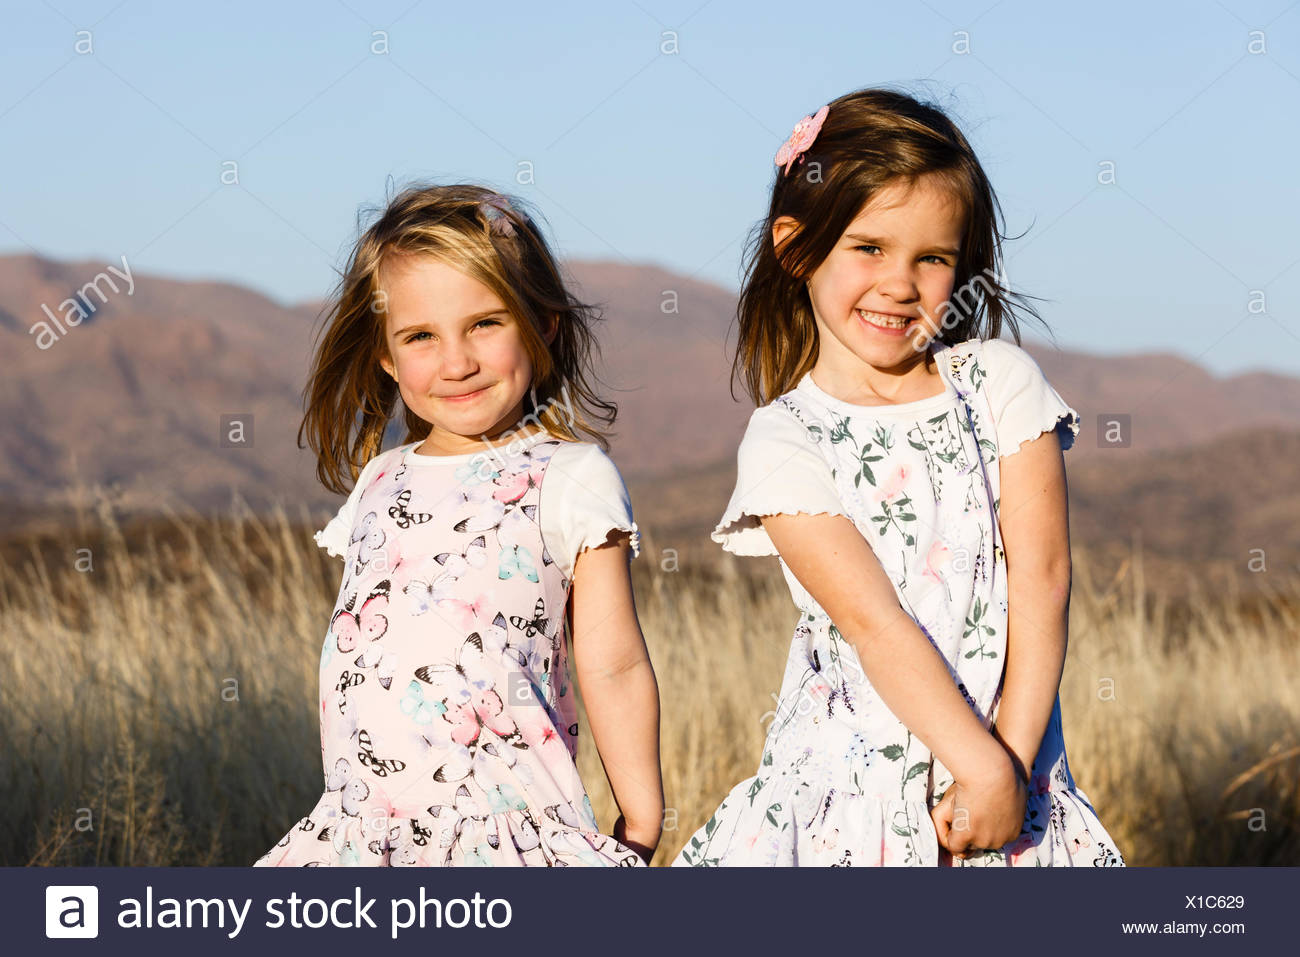 Two sisters, toddlers, Namibia - Stock Image